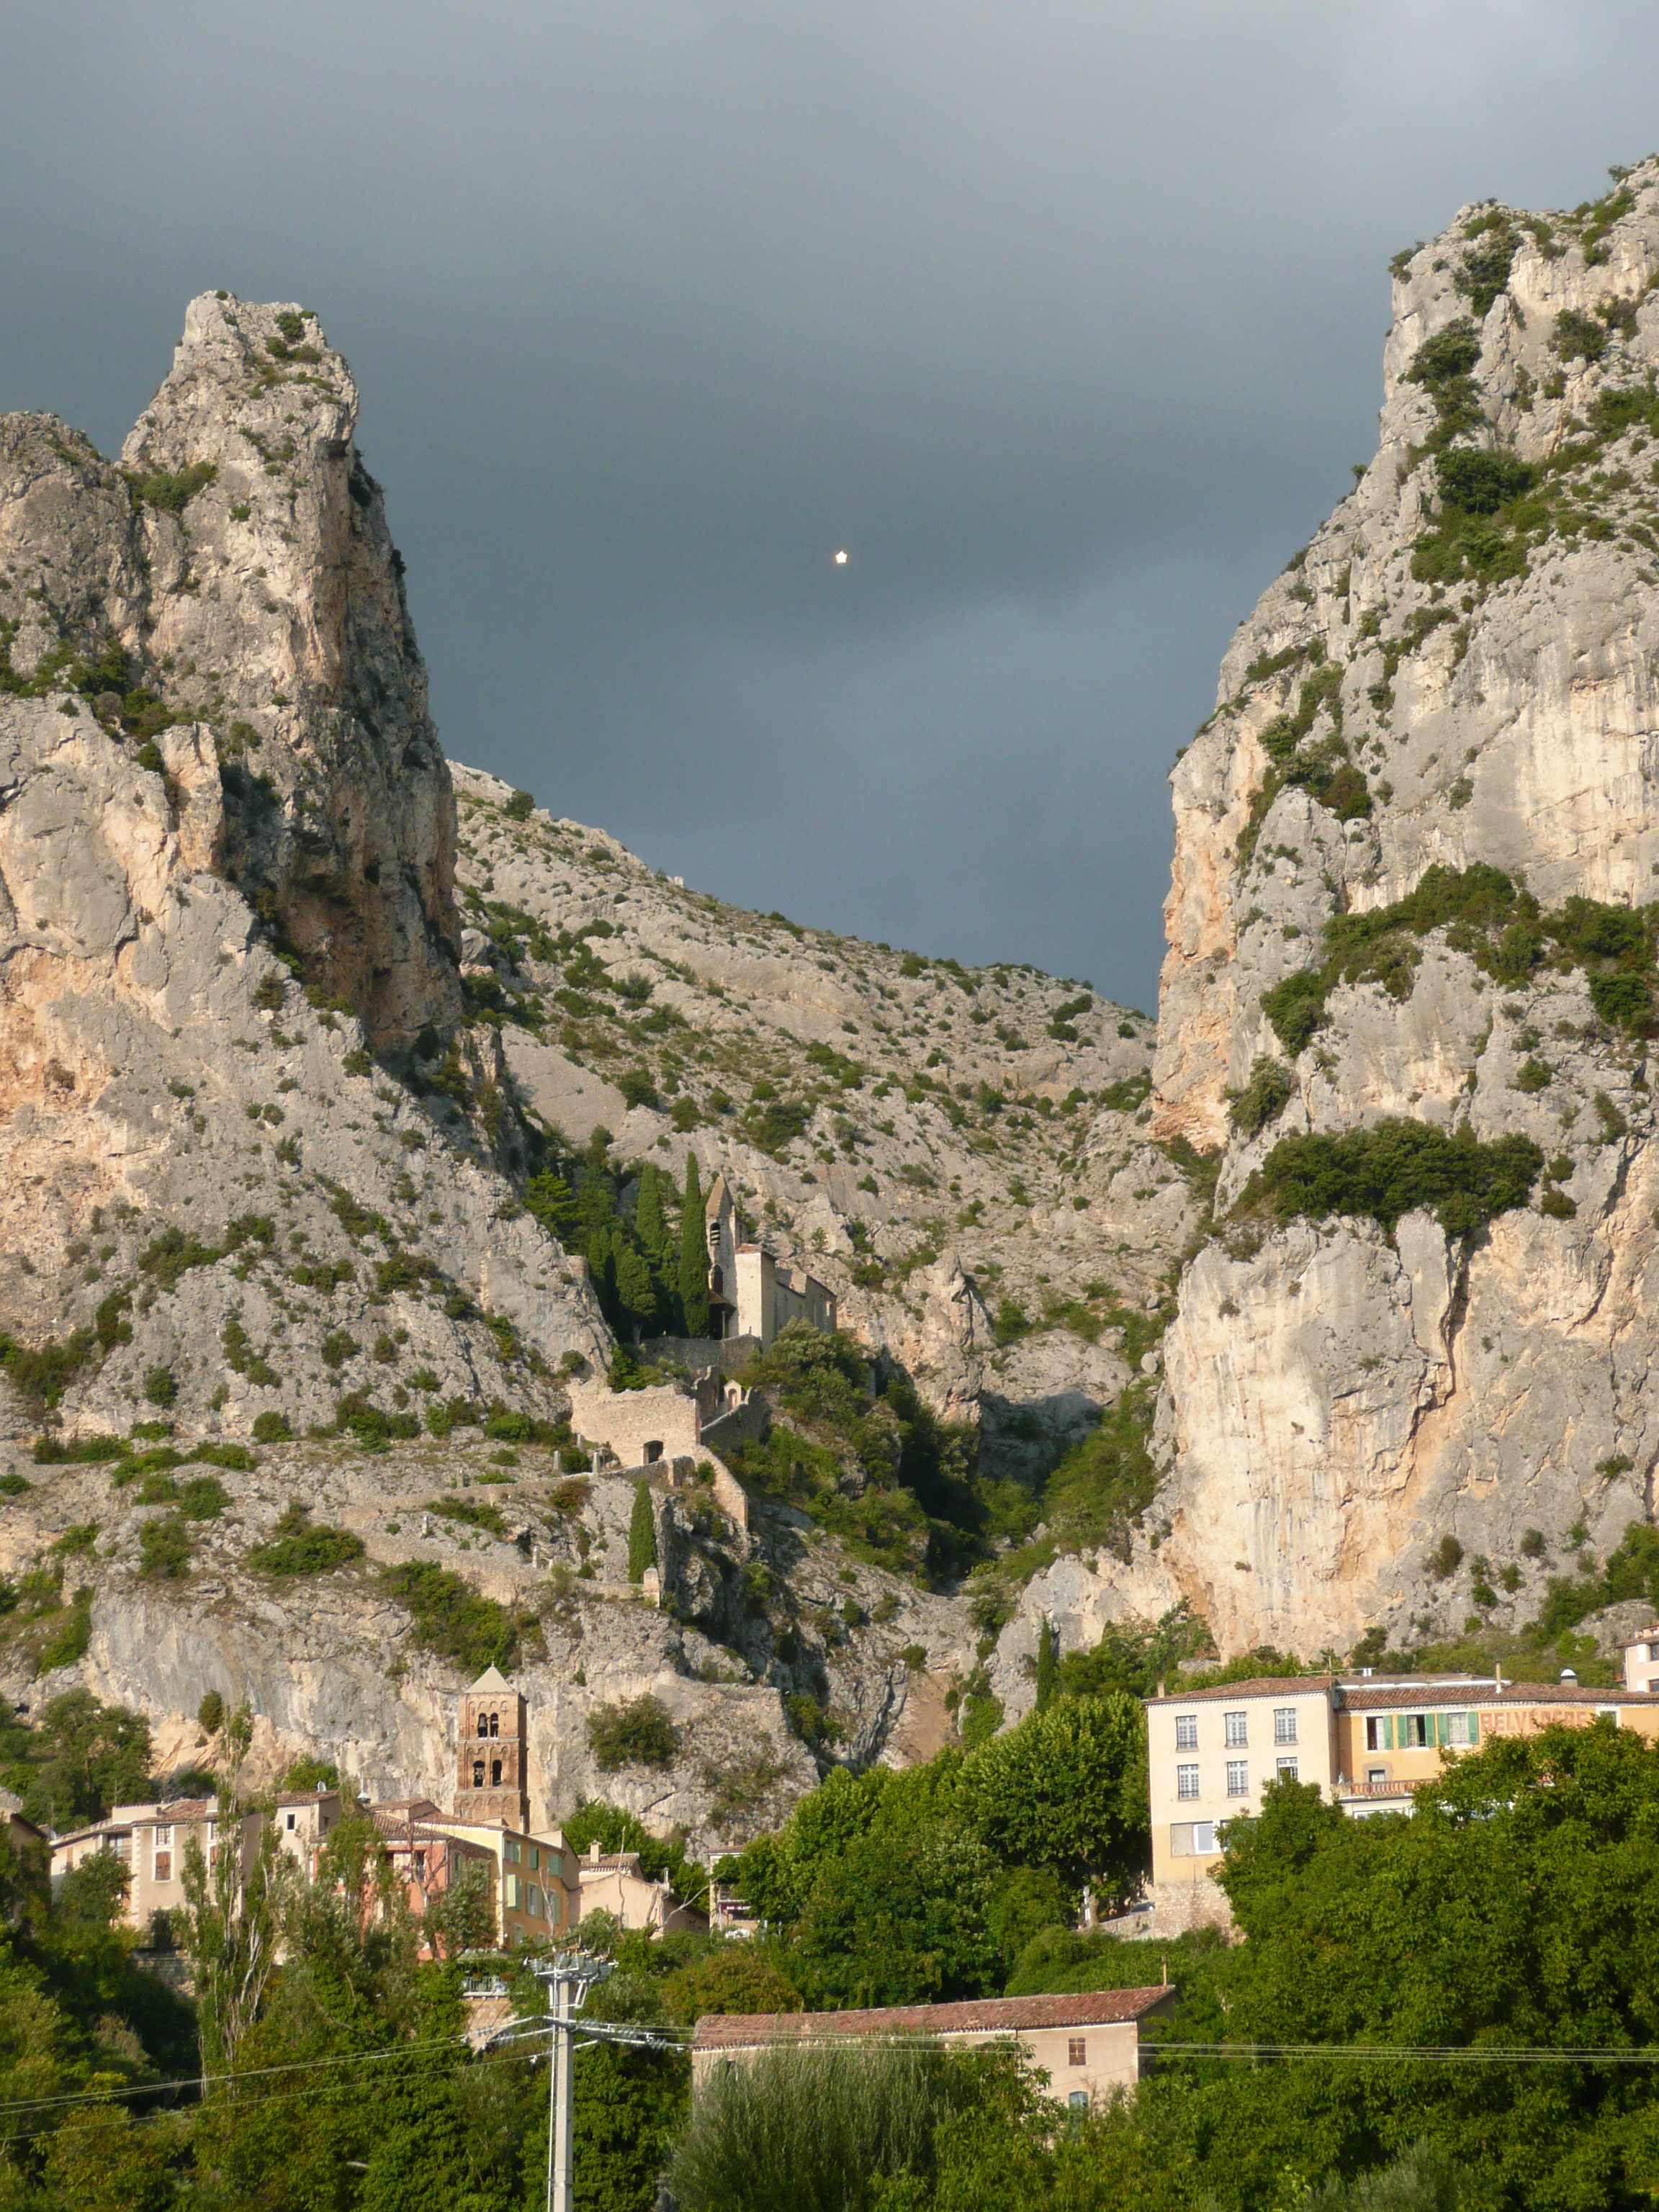 The peaks above the village of Moustiers-Sainte-Marie, with the famous star suspended between. Photo taken on September 20, 2008.